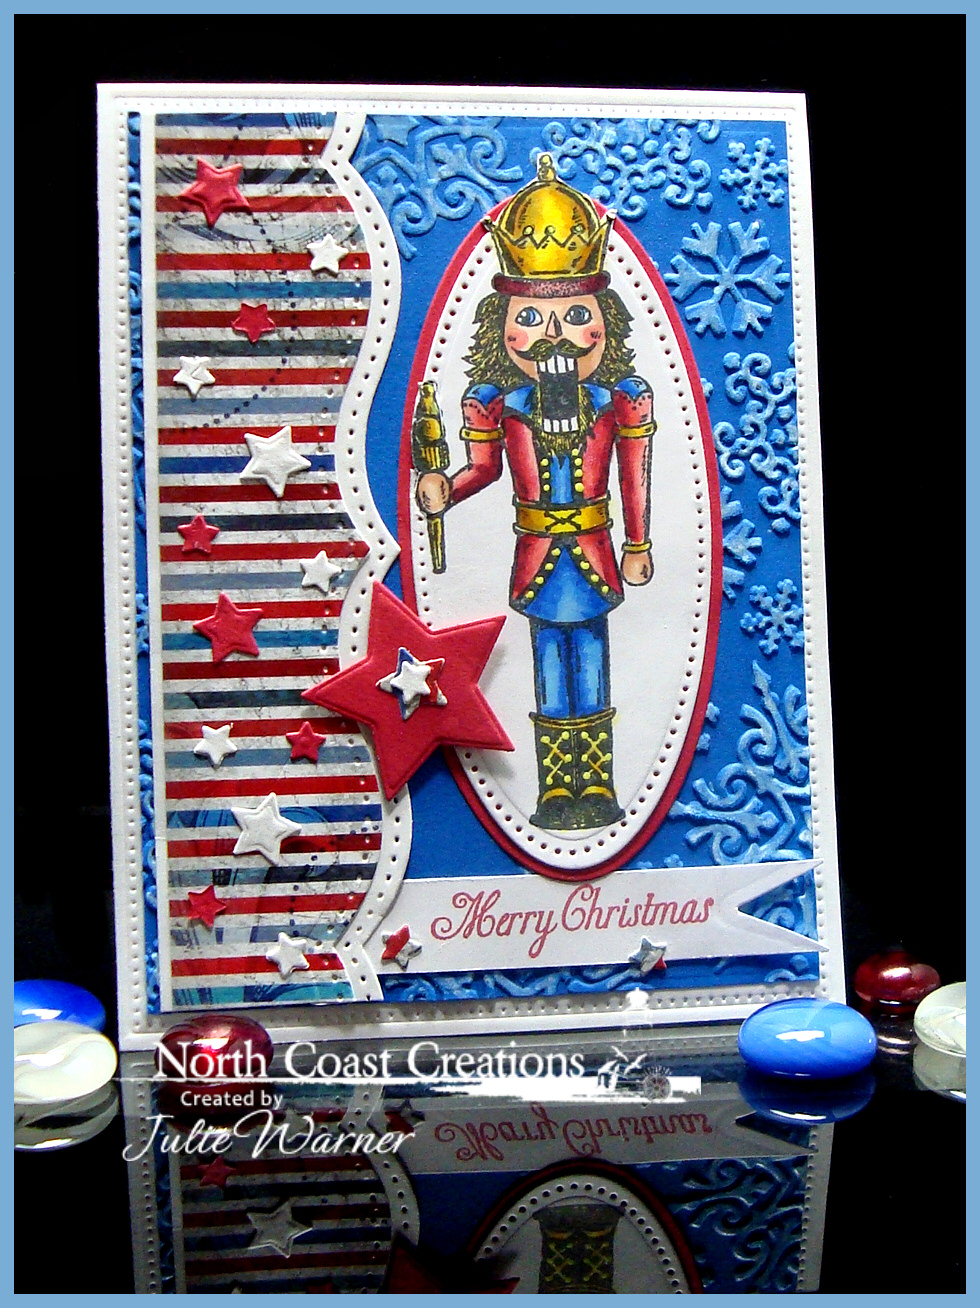 Stamps - North Coast Creations Nutcracker, Old Fashioned Santa, ODBD Patriotic Paper Collection, ODBD Custom Sparkling Stars Dies, ODBD Custom Pennants Die, ODBD Custom Flourished Star Pattern Die